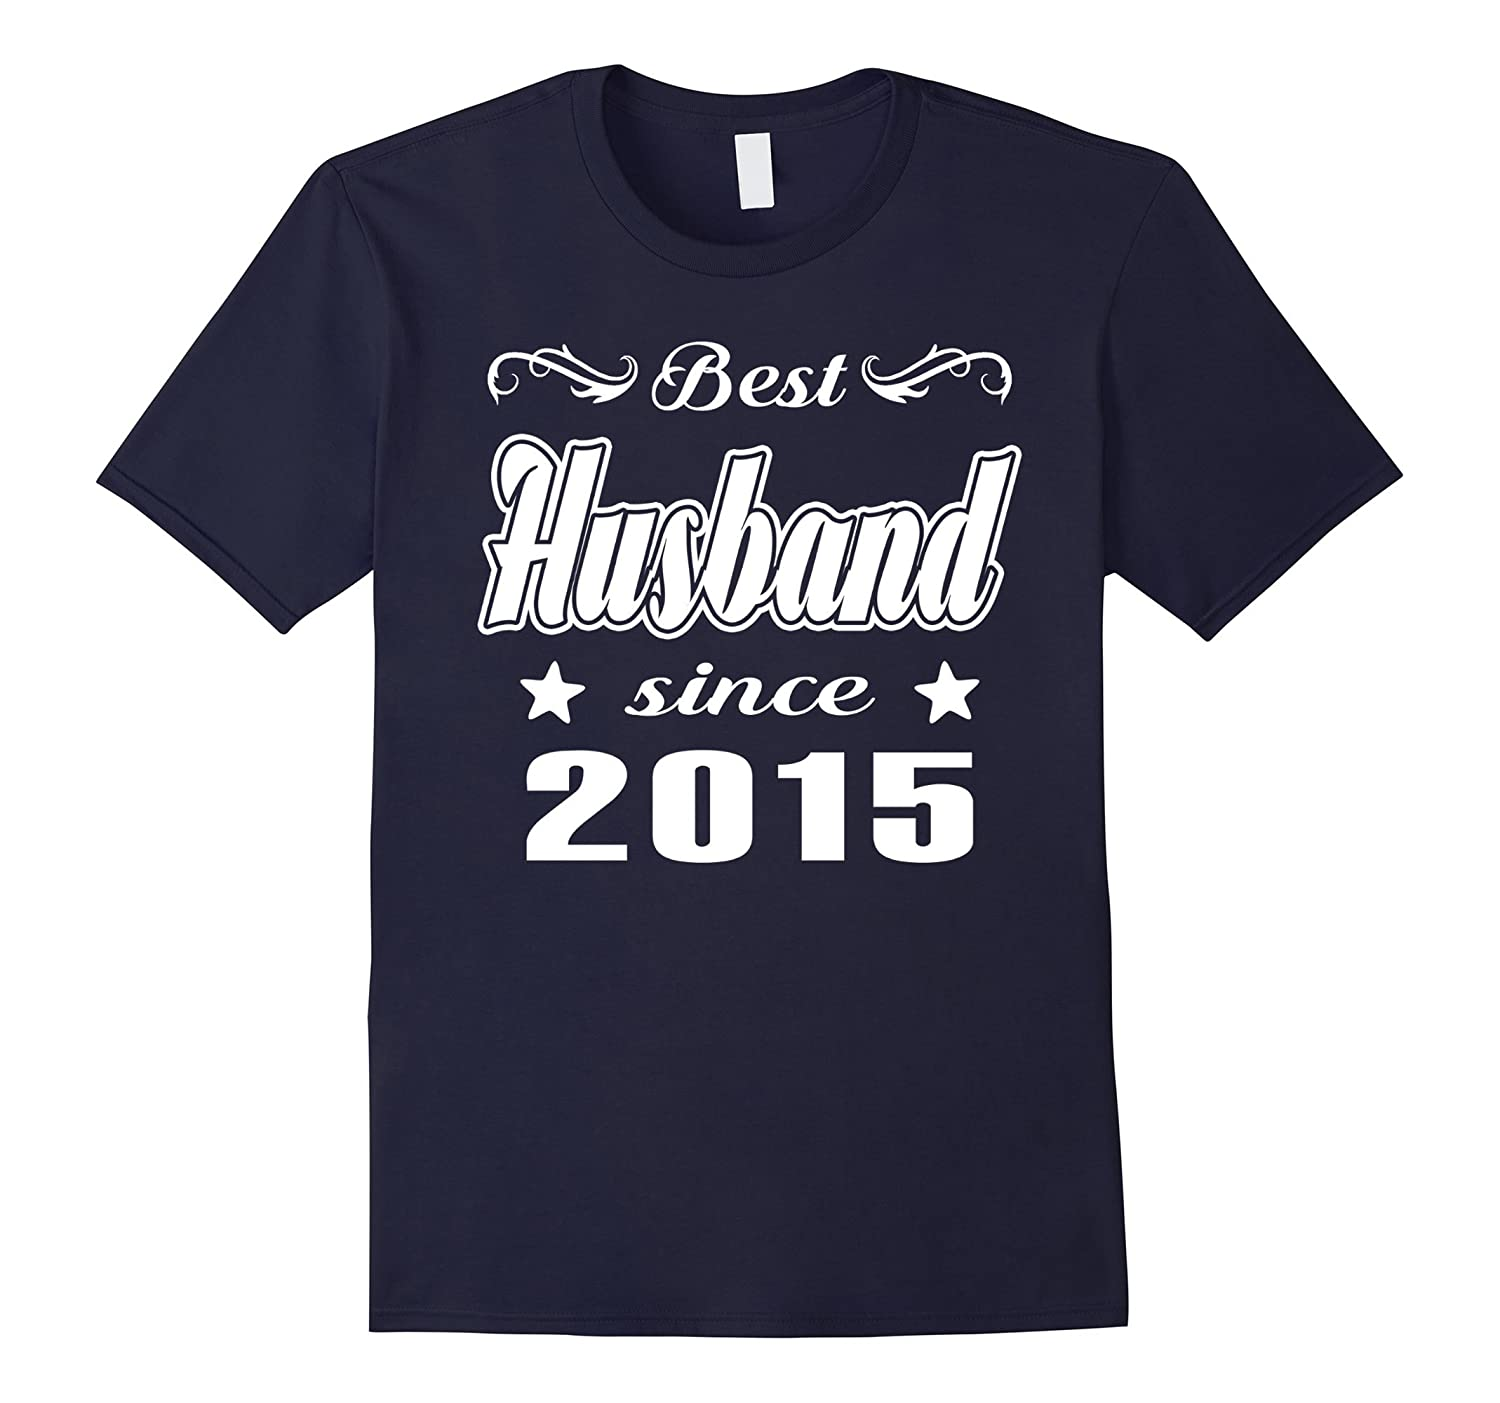 Best Husband Since 2015 - 2 Years Anniversary Gifts-Vaci